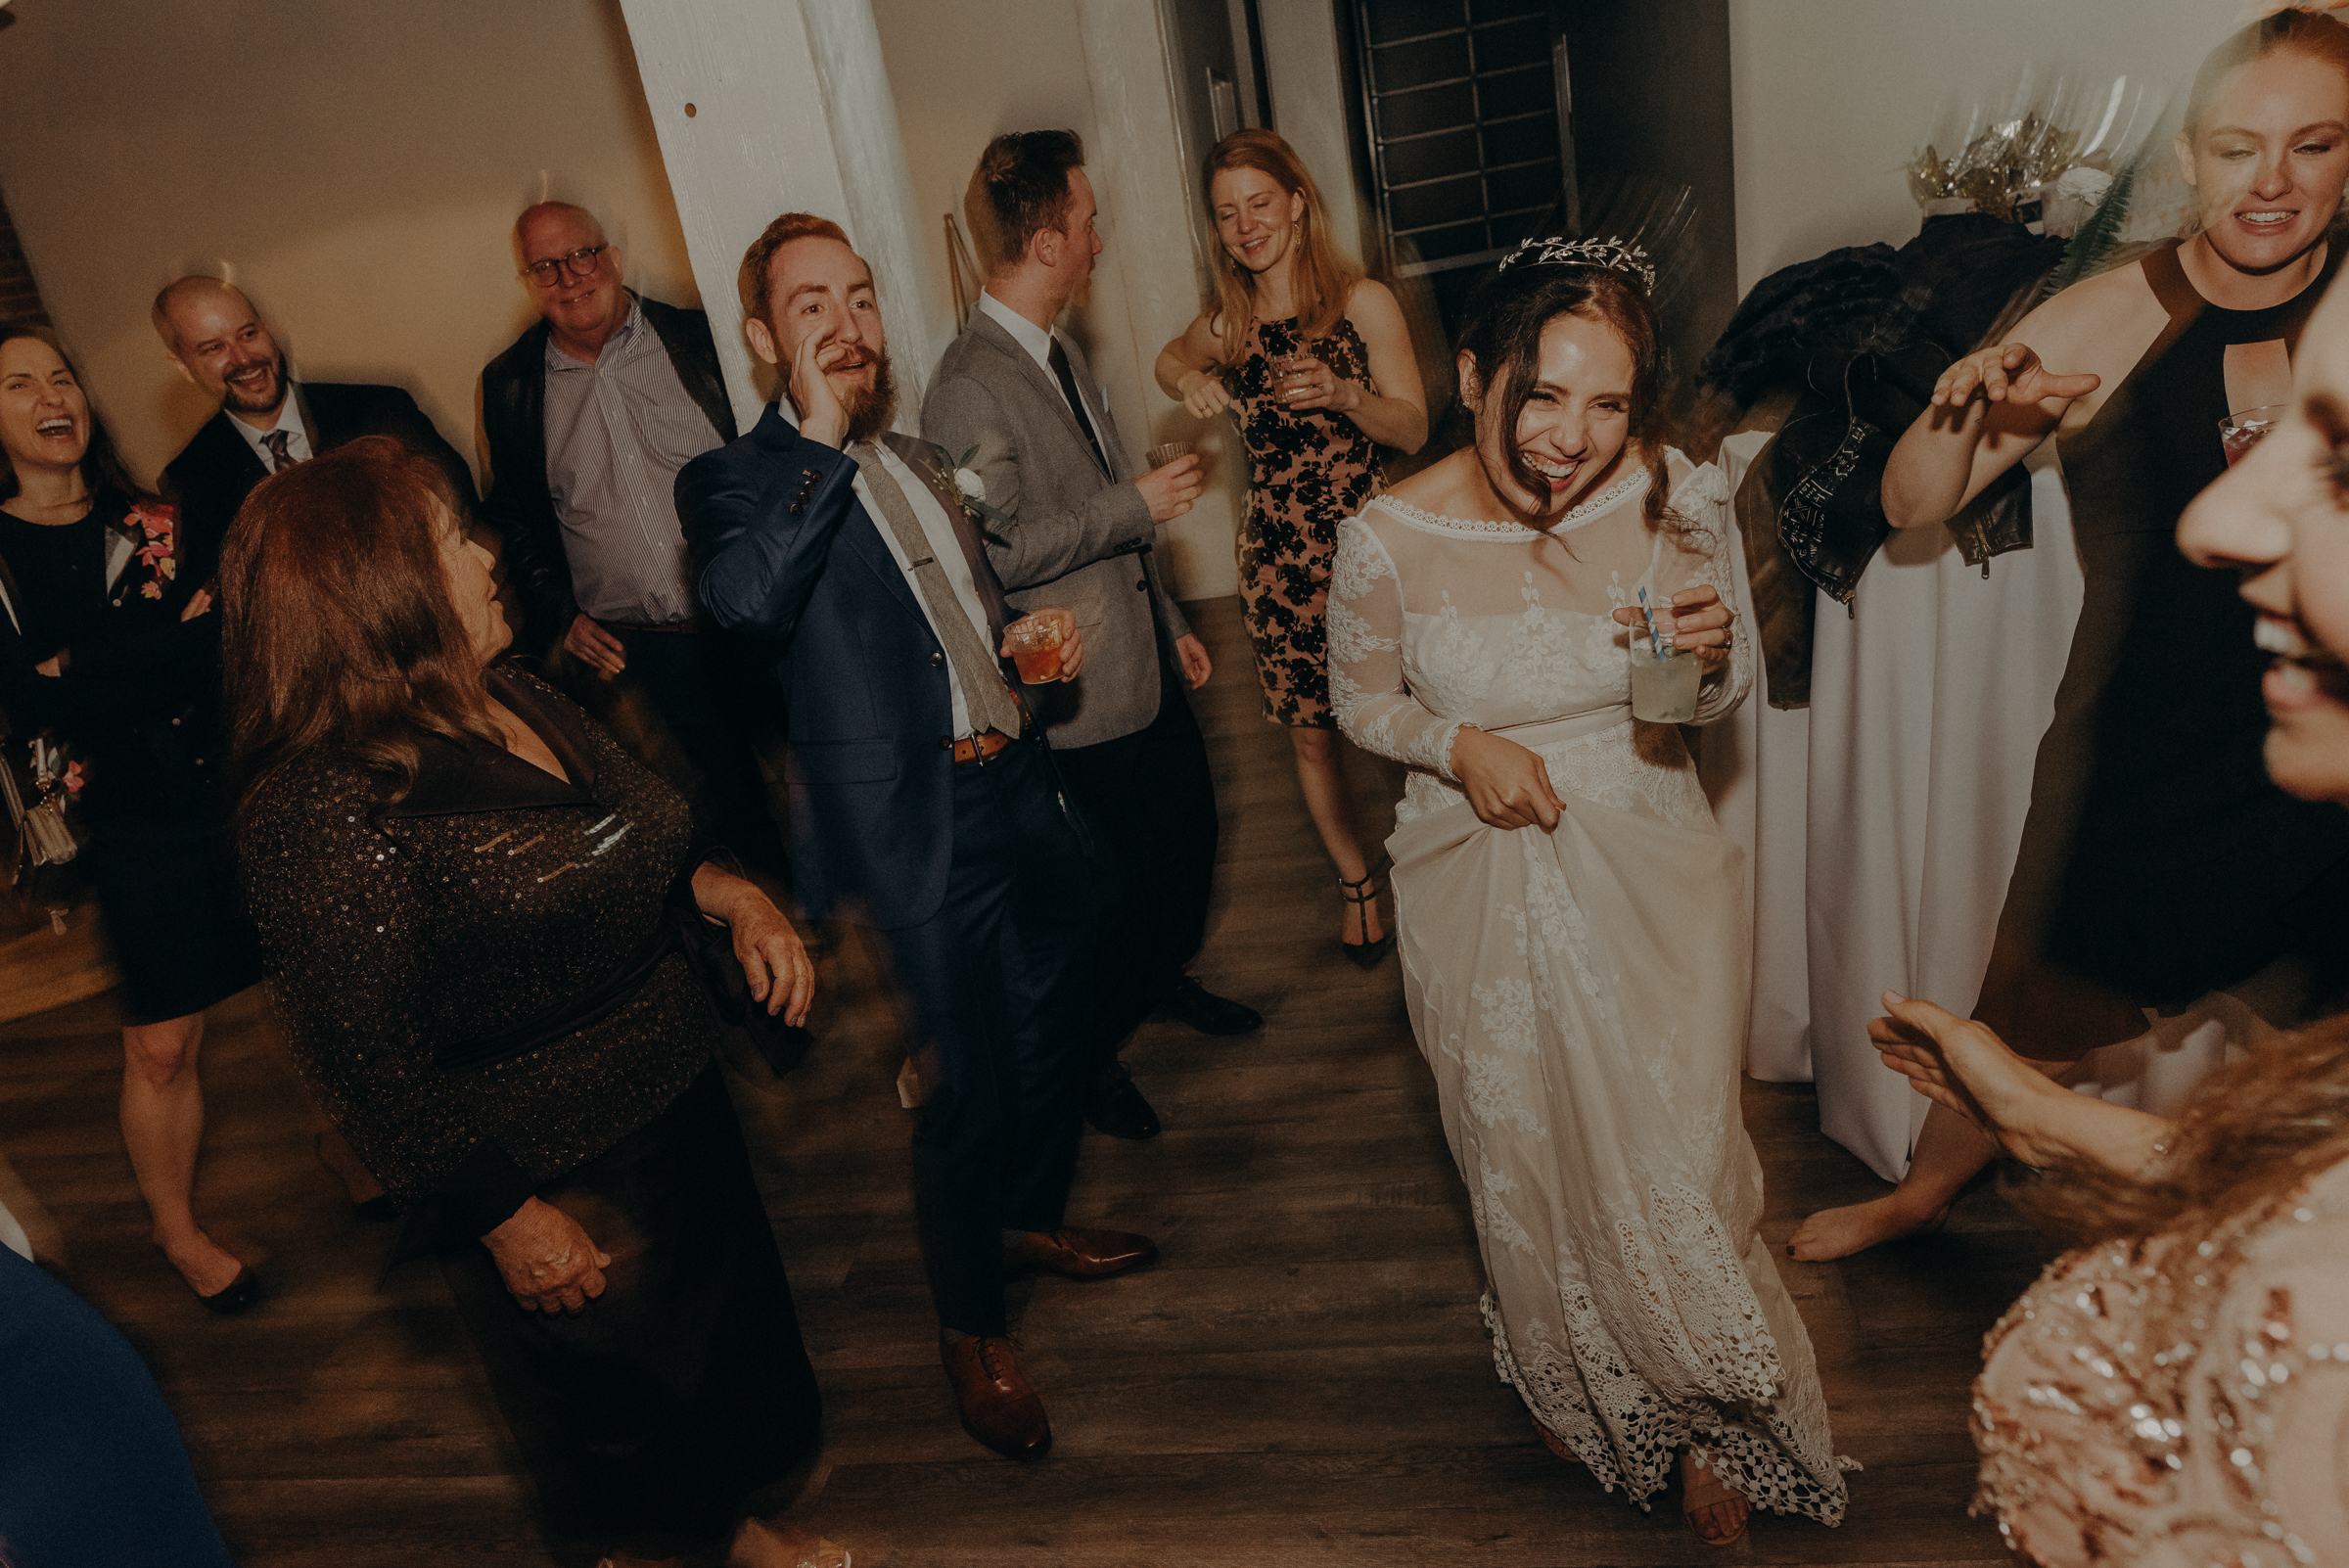 Isaiah + Taylor Photography - The Unique Space Wedding, Los Angeles Wedding Photography 167.jpg